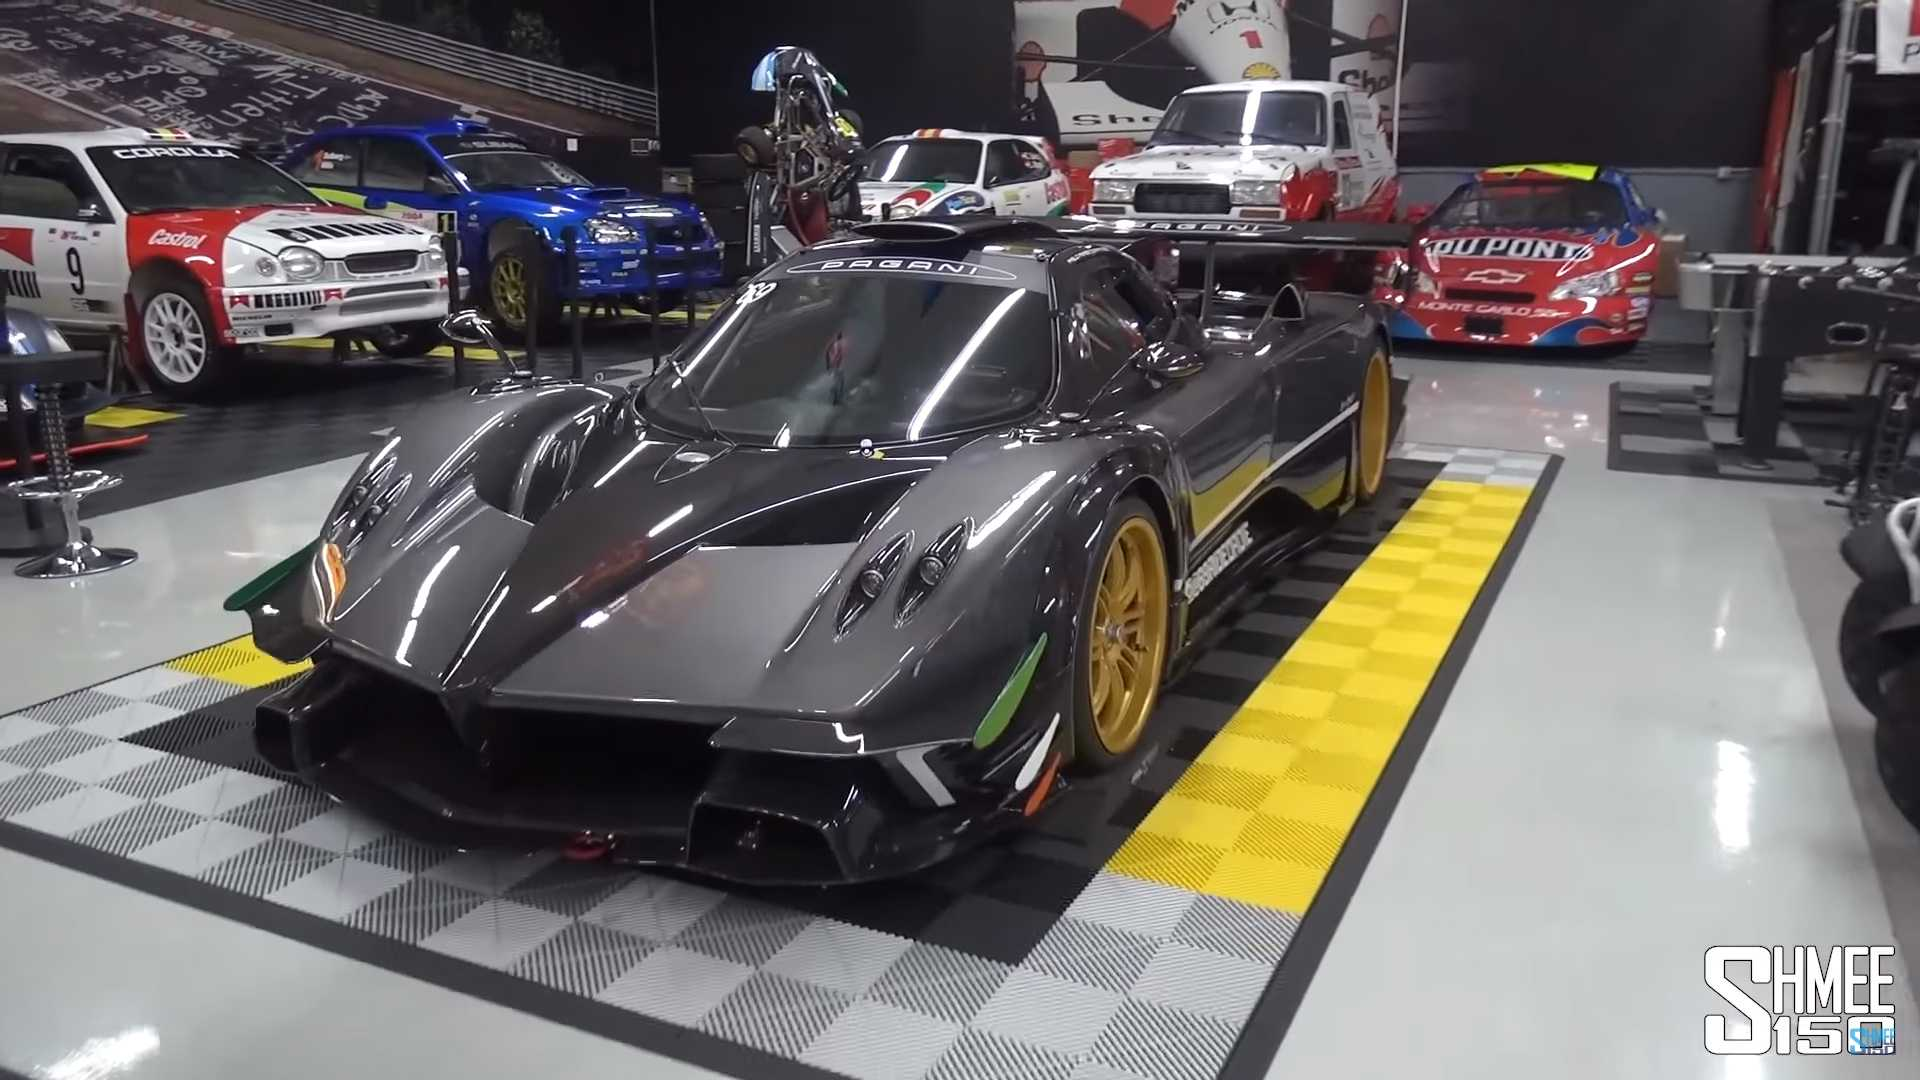 This Epic Car Collection Includes A Pagani Zonda R In A Living Room